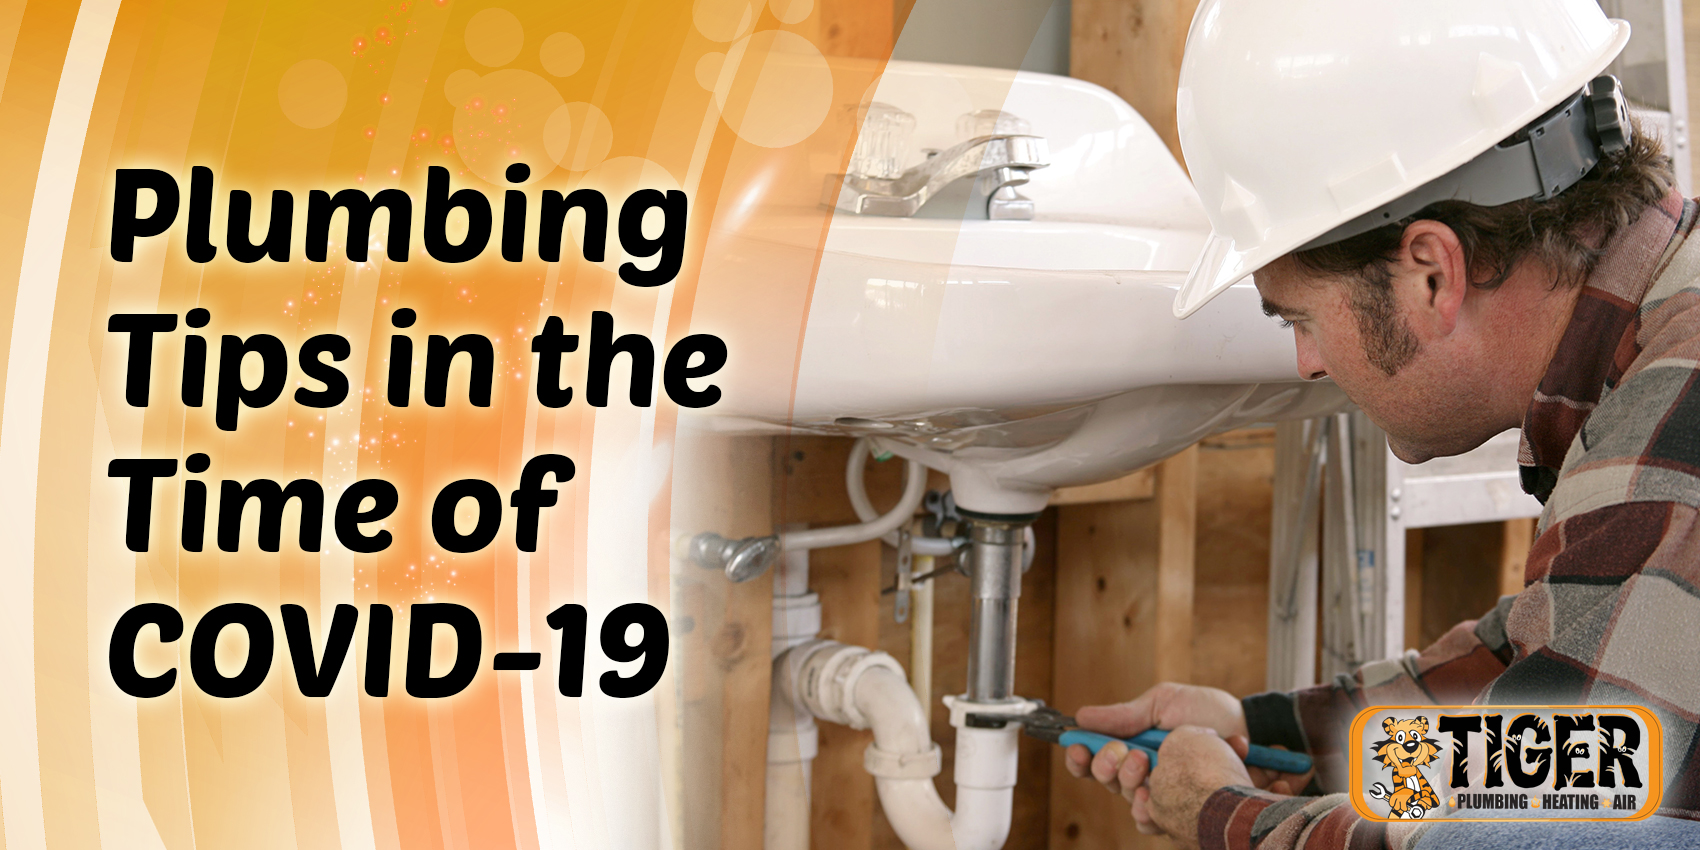 Plumbing Tips in the Time of COVID-19